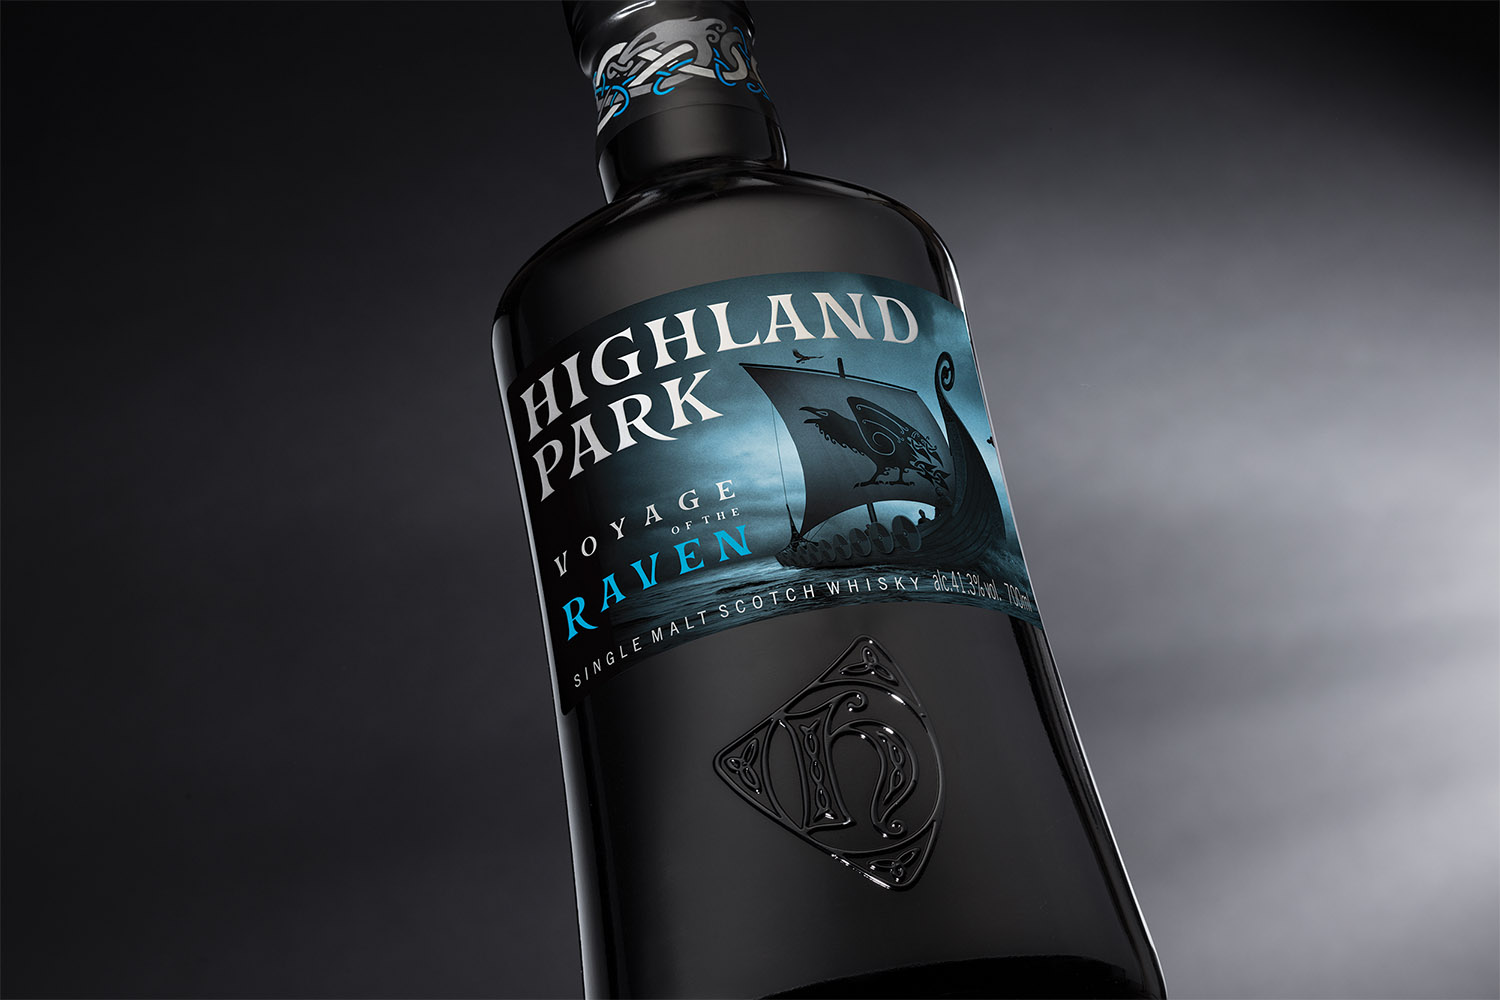 Mountain_Highland Park_Raven_004.jpg